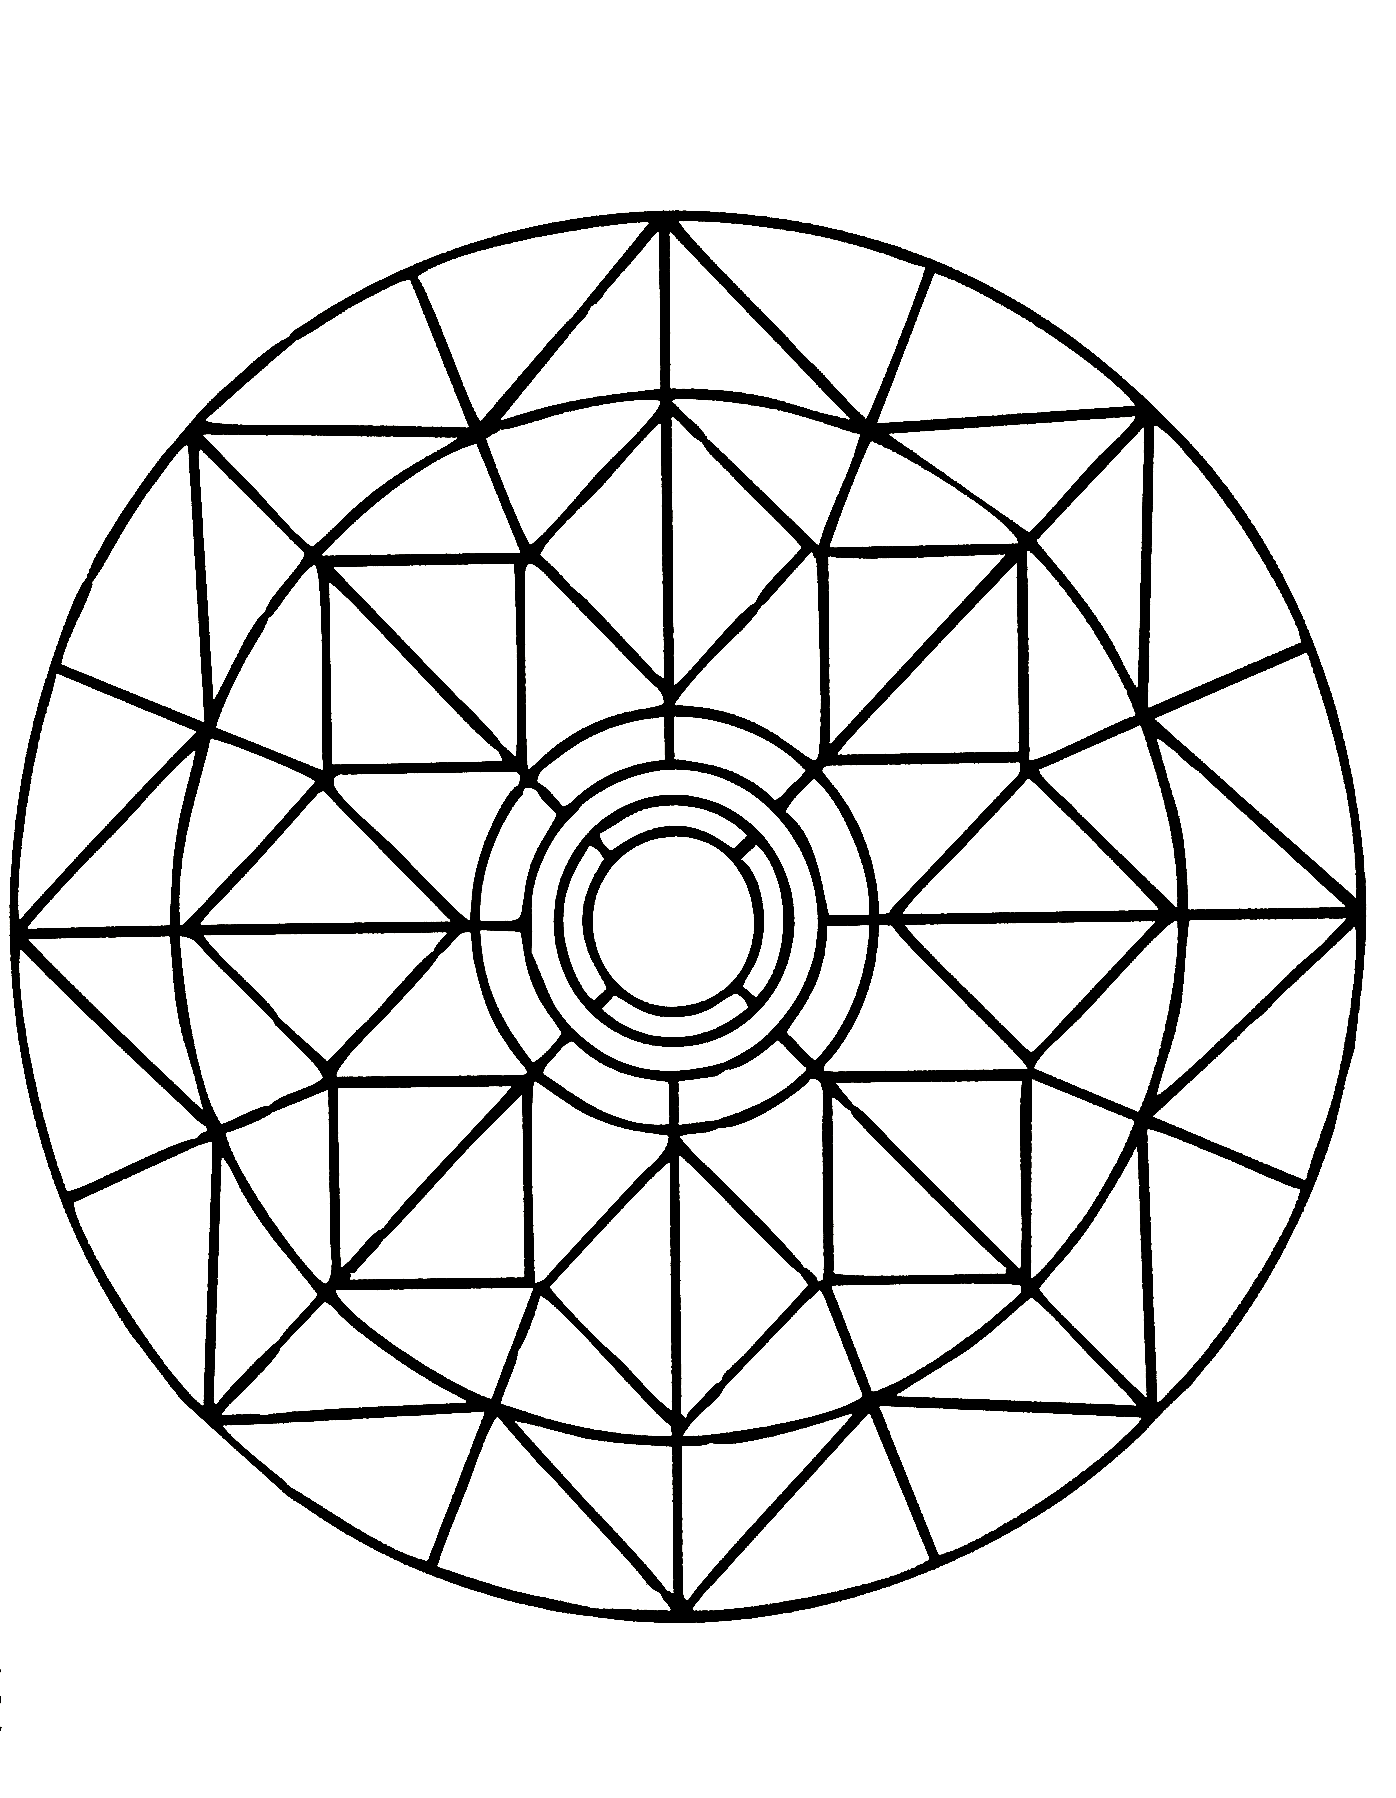 Simple mandalas to print and color